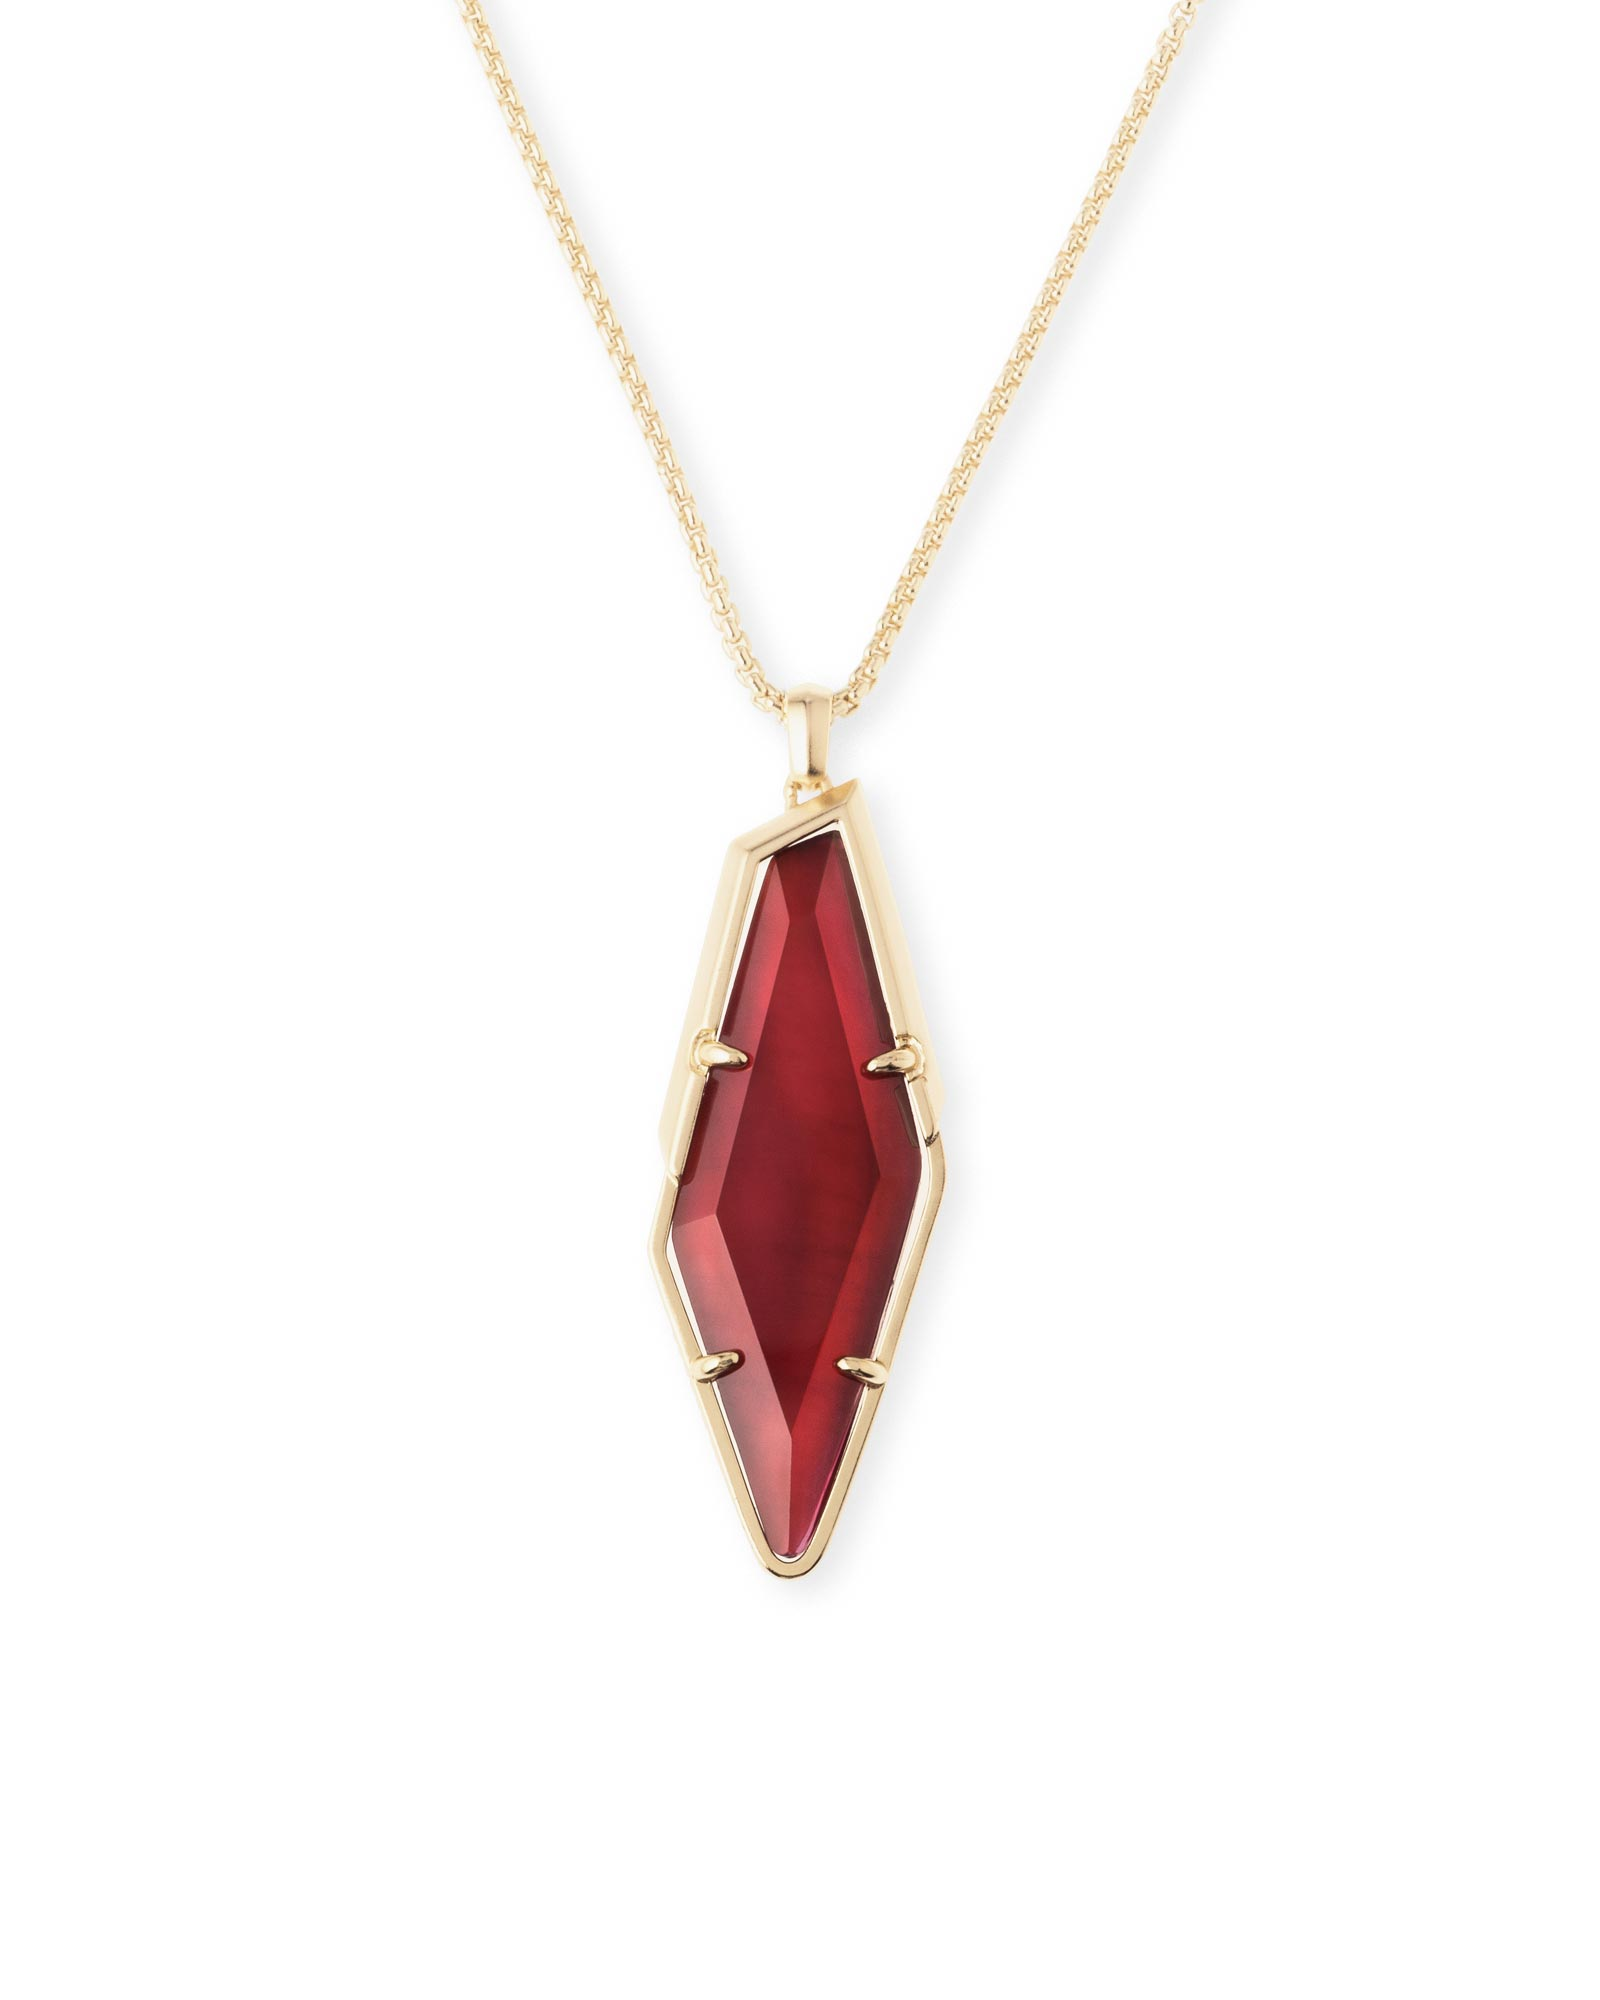 Beatrice Long Necklace in Burgundy Illusion